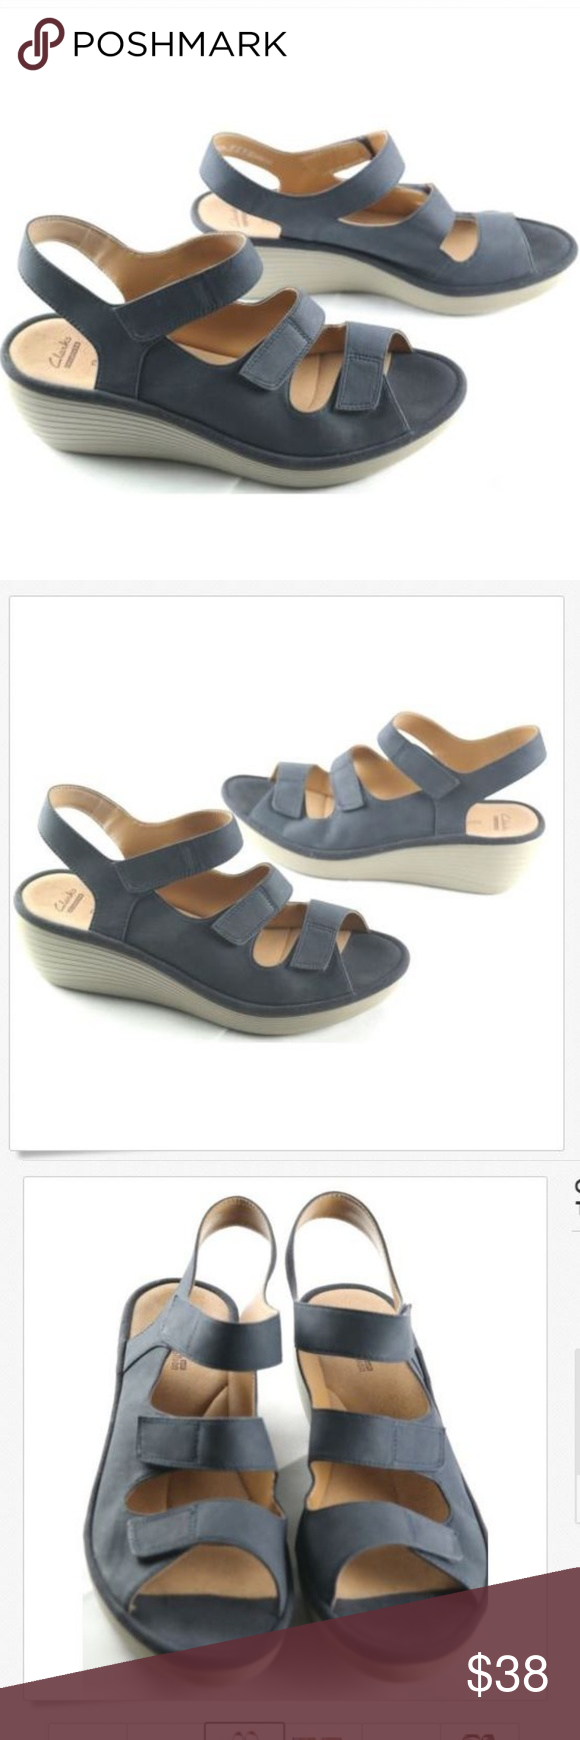 cd0be7f66b69 Clarks Reedly Juno Blue Nubuck Wedge Sandals Clarks Reedly Juno Wedge Sandals  Size 12 Womens Blue